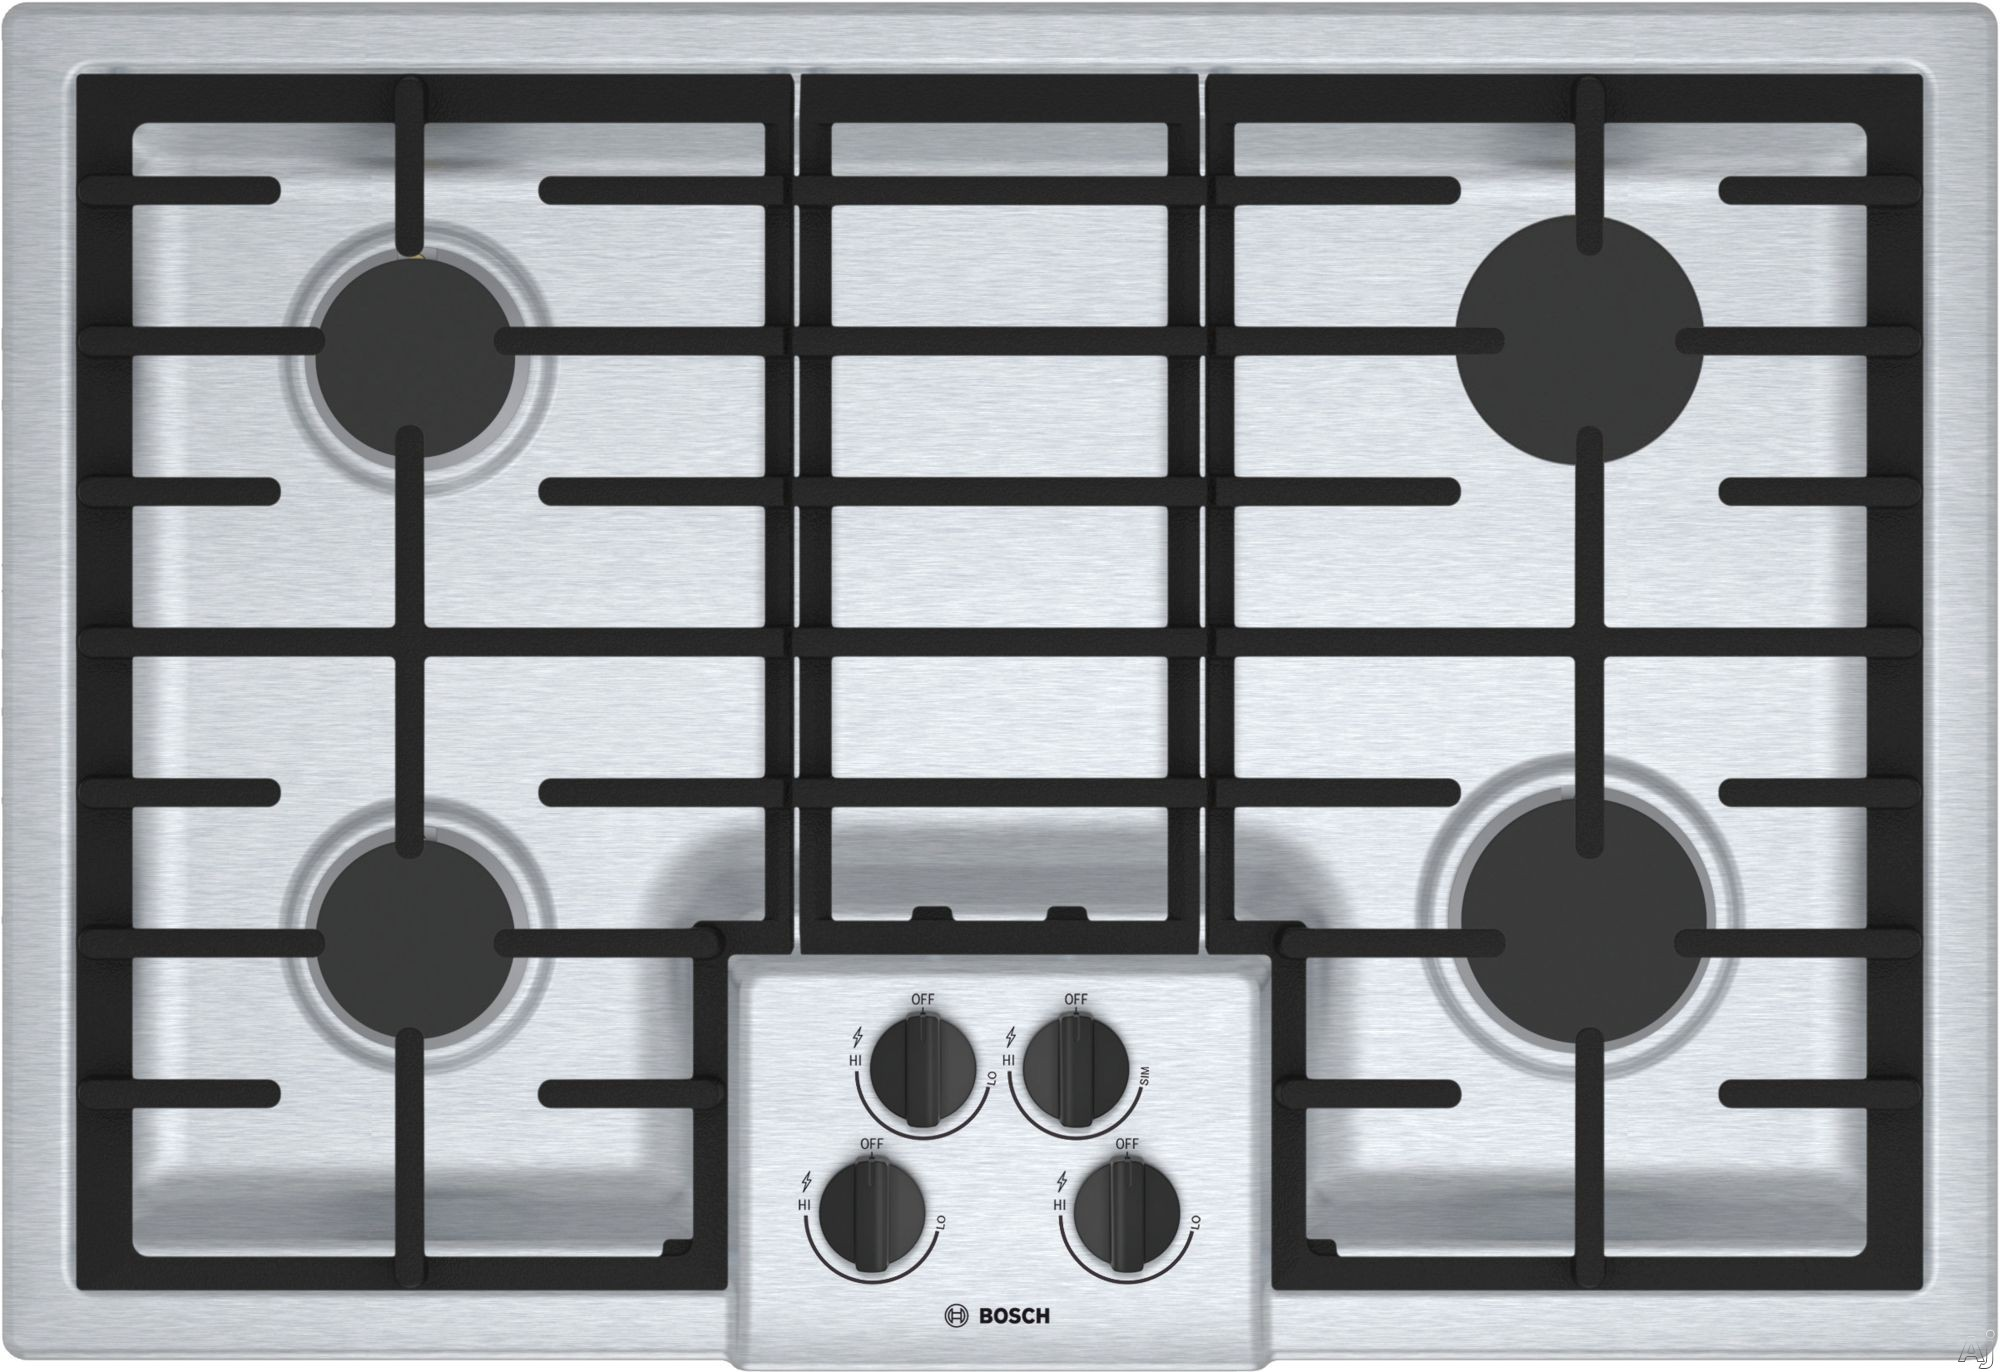 Bosch 500 Series NGM5056UC 30 Inch Gas Cooktop with Sealed Burners, OptiSim® Burner, Cast-Iron Continuous Grates, LED Indicator Lights, Electronic Re-ignition and STAR-K Sabbath Mode